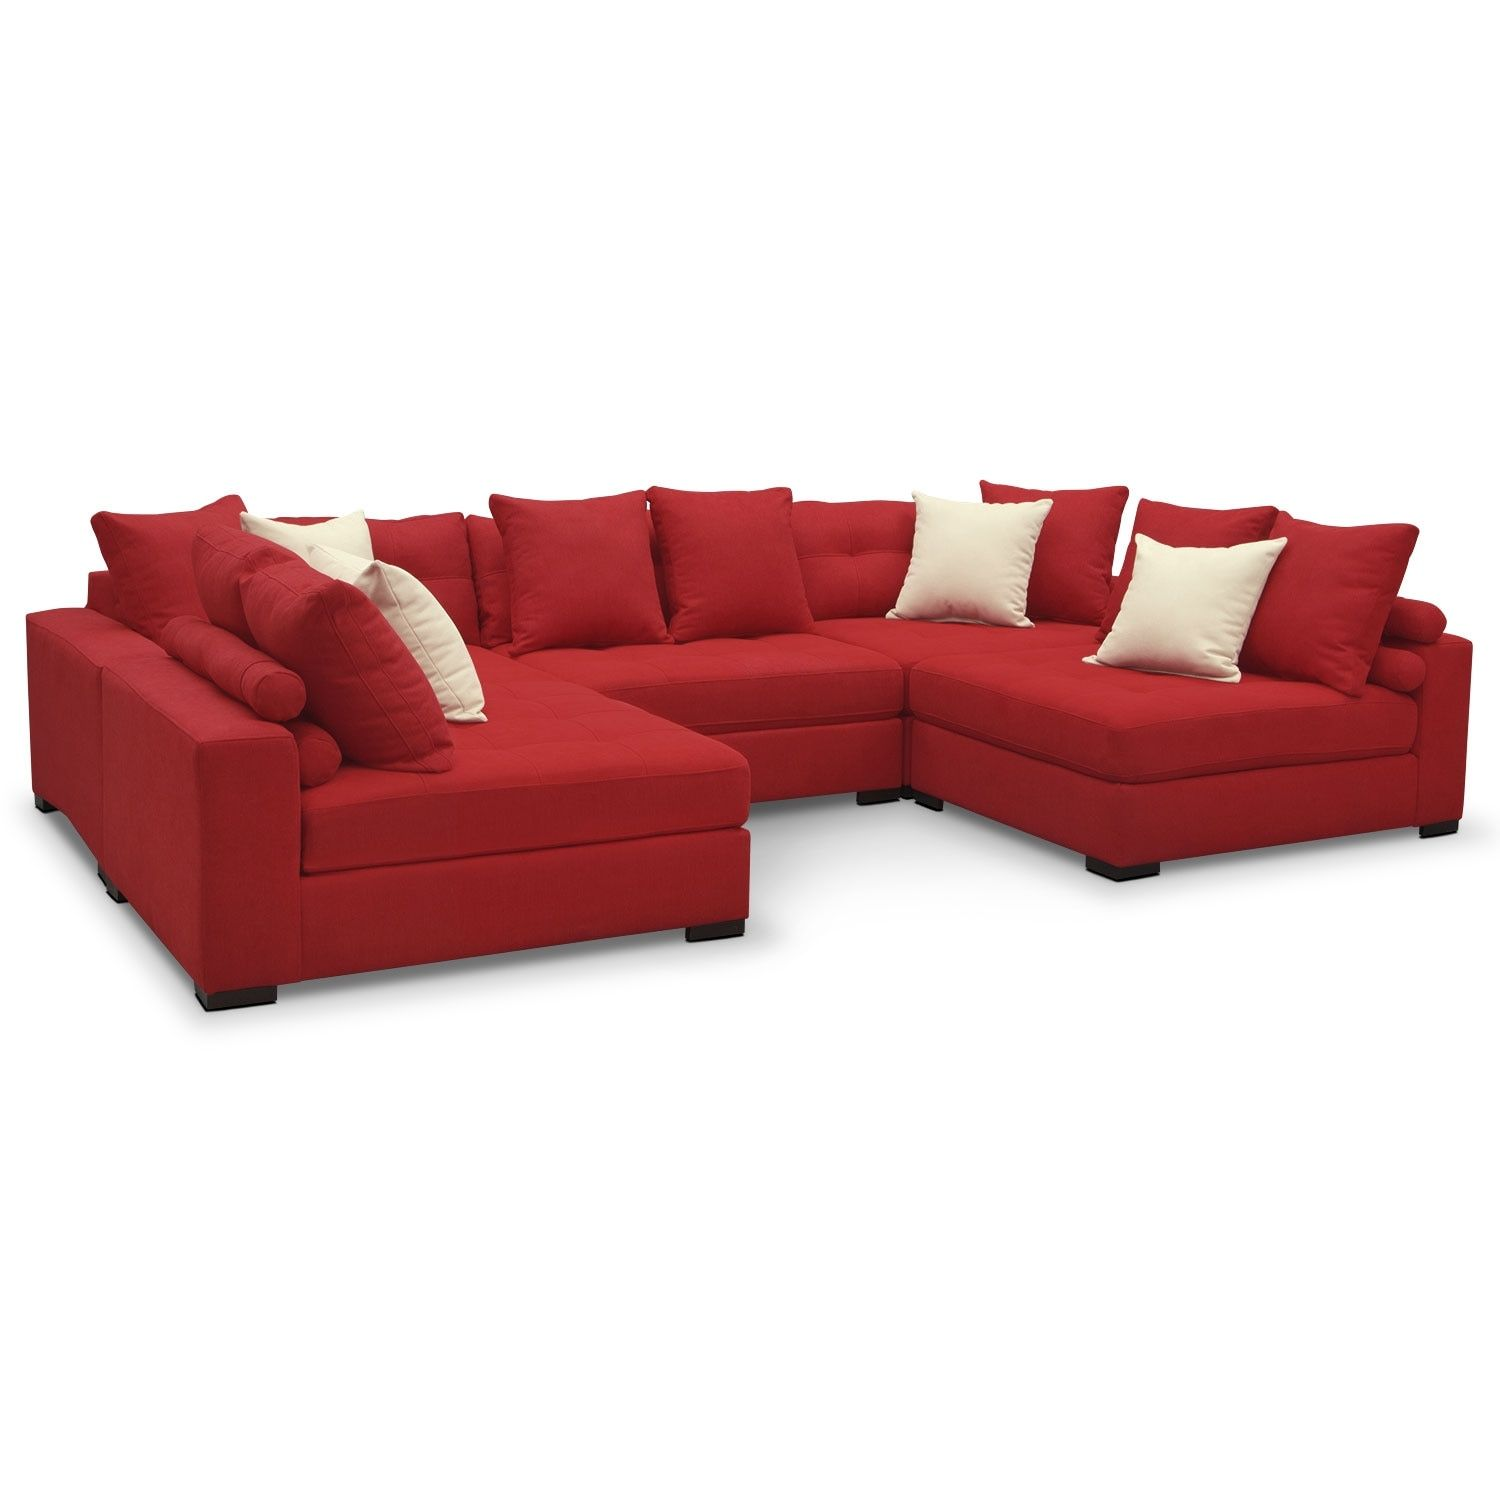 Handcrafted Design Built For Durability And Versatility The Venti Red Five Piece Sectional By Kroehler Furniture Value City Furniture Living Room Furniture